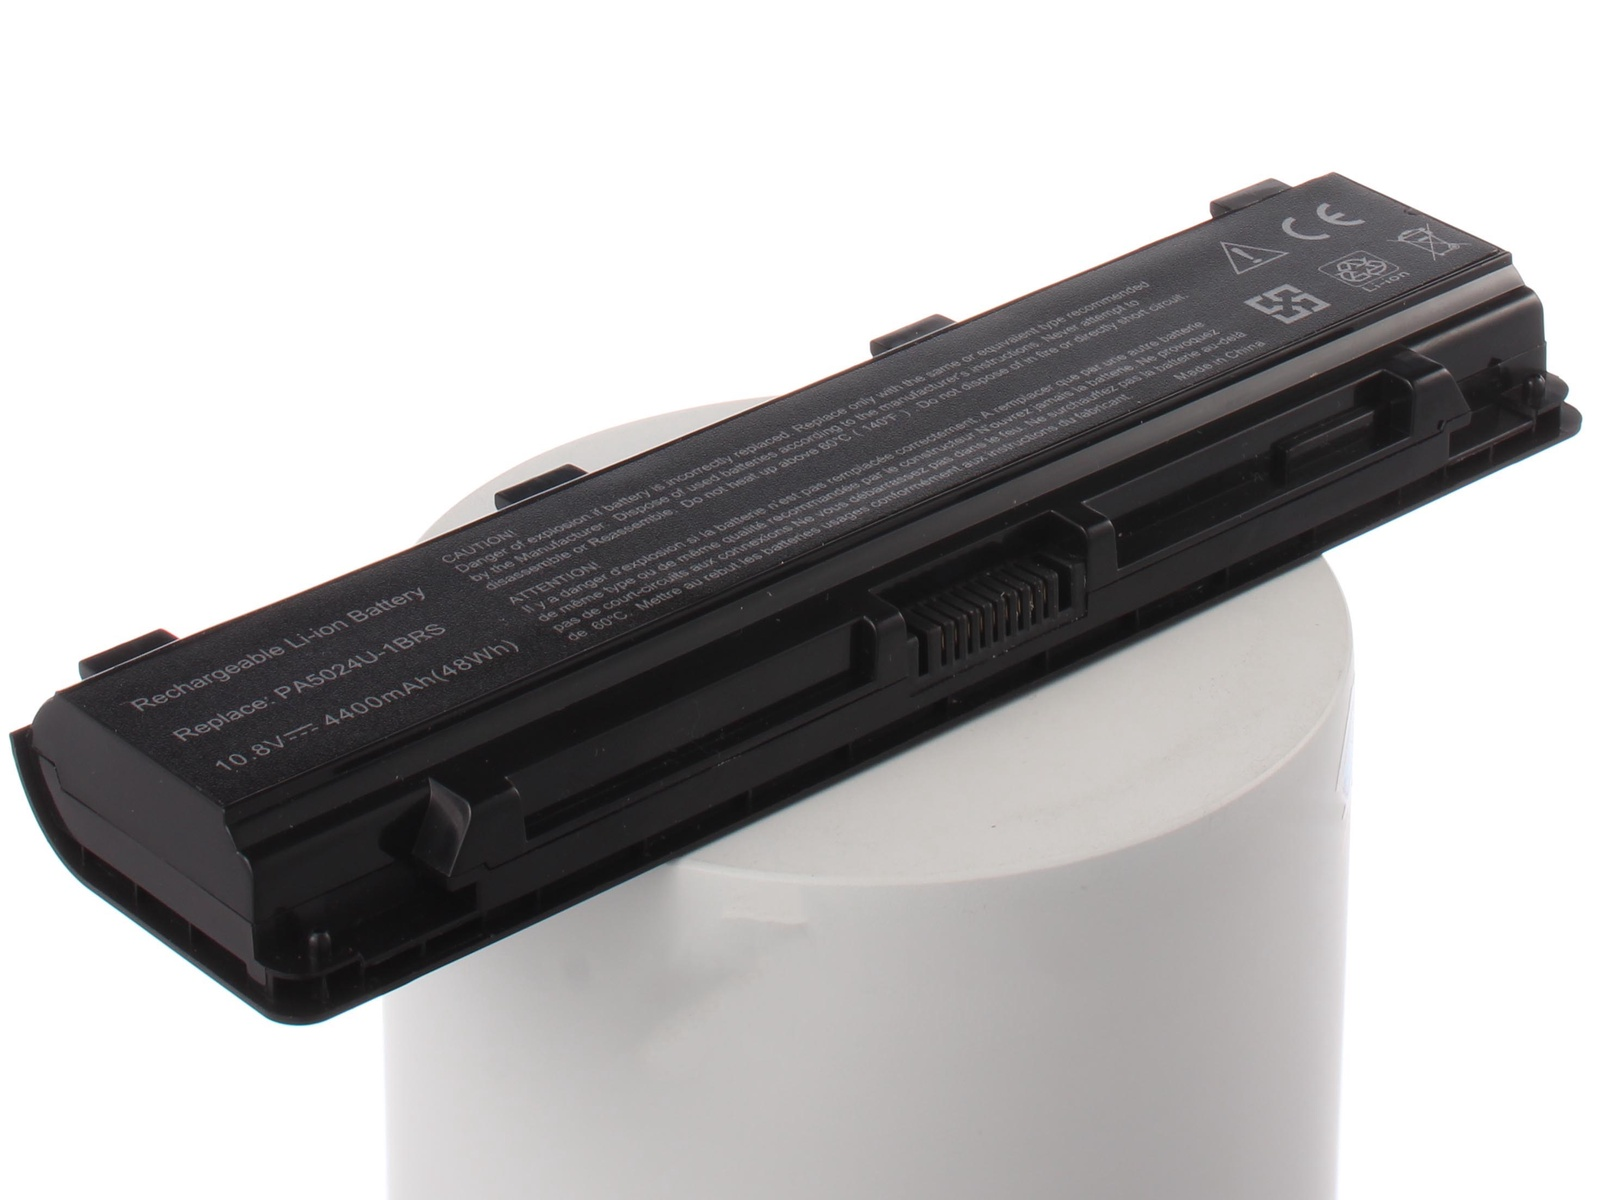 Аккумулятор для ноутбука AnyBatt для ToshiBa Satellite L850-B1W, Satellite P875-DTS, C850-B6K, C850-BKK, Satellite C870-B3W, Satellite P855-B2S, Satellite L850-C5S, C870-BJK, C870-CNK, L850-C3R, Satellite C850-E3K 90cm baby play mats carpet kids room rabbit lion animal soft cotton crawling mats round floor rug playmats for baby gym mat